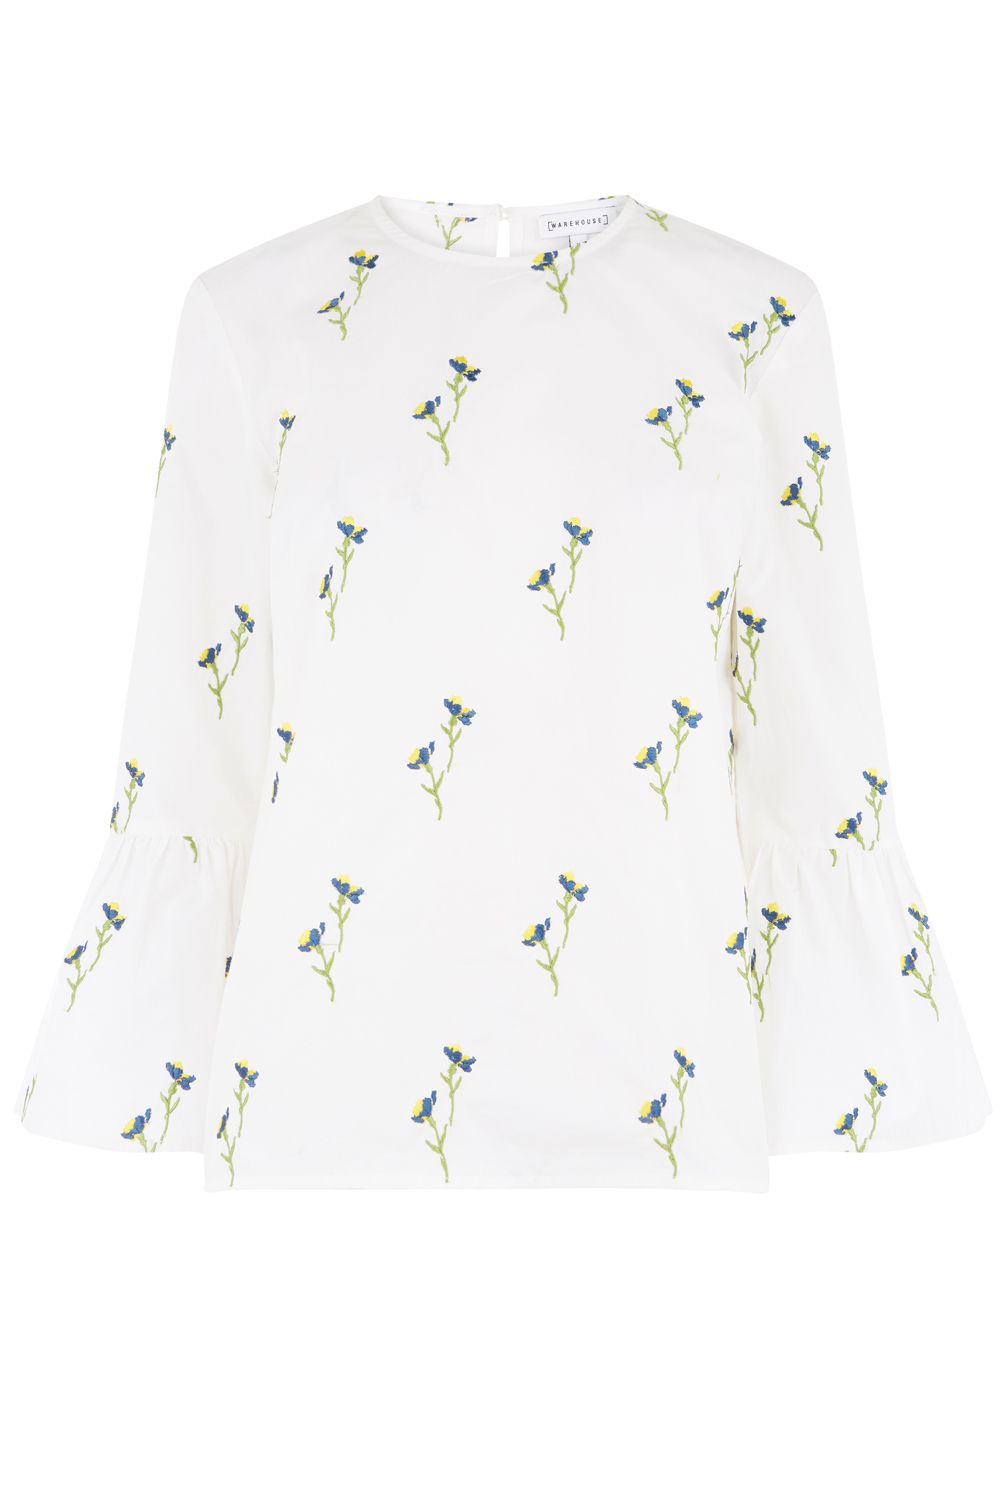 Warehouse Iris Embroidered Top, White